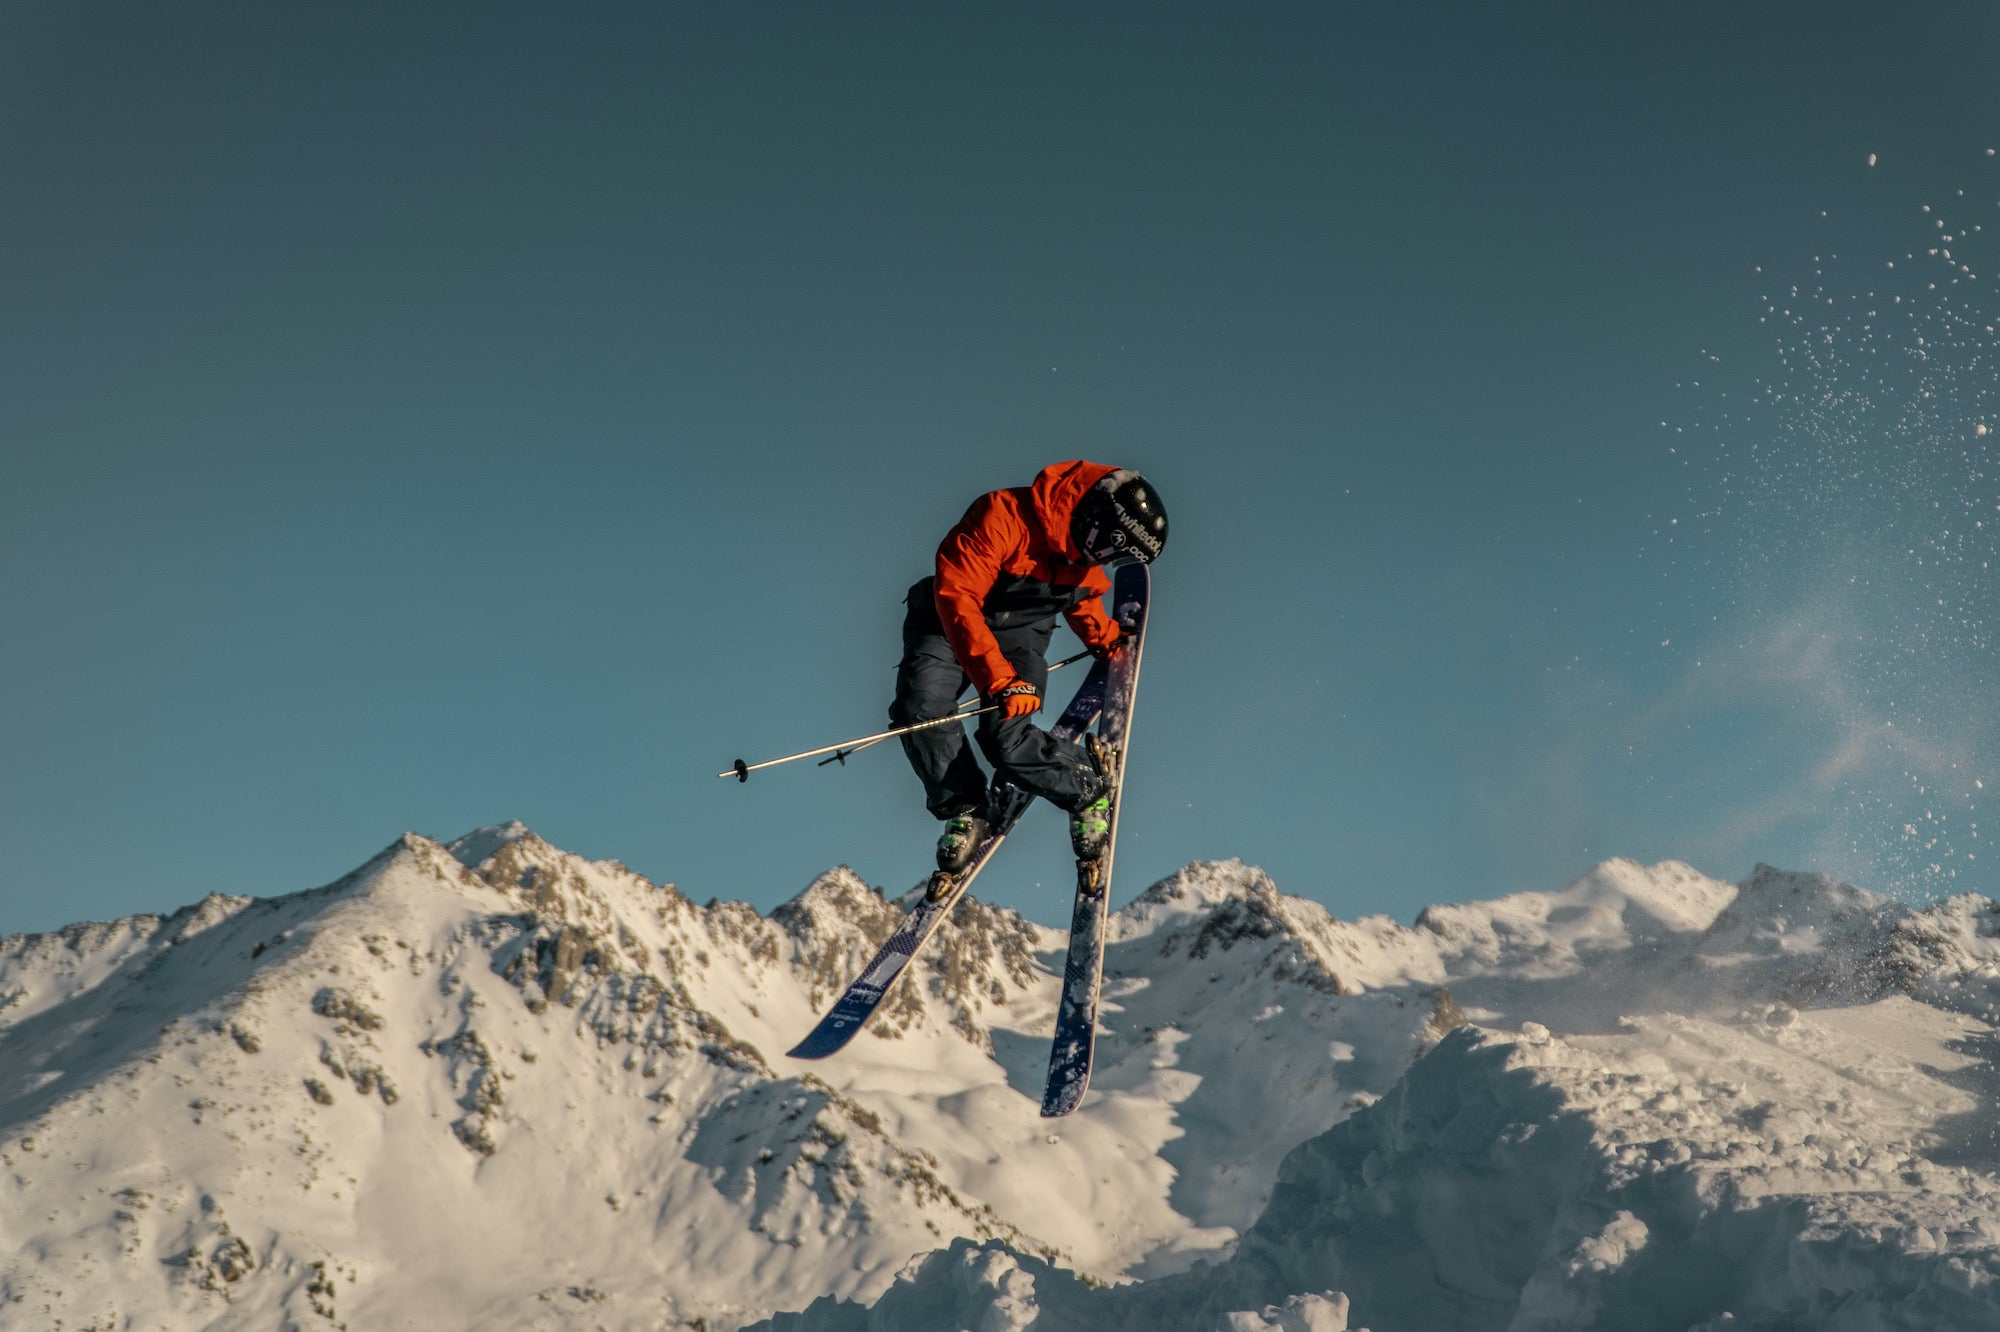 Whitedot rider, Will Tucker getting air time at Verbier